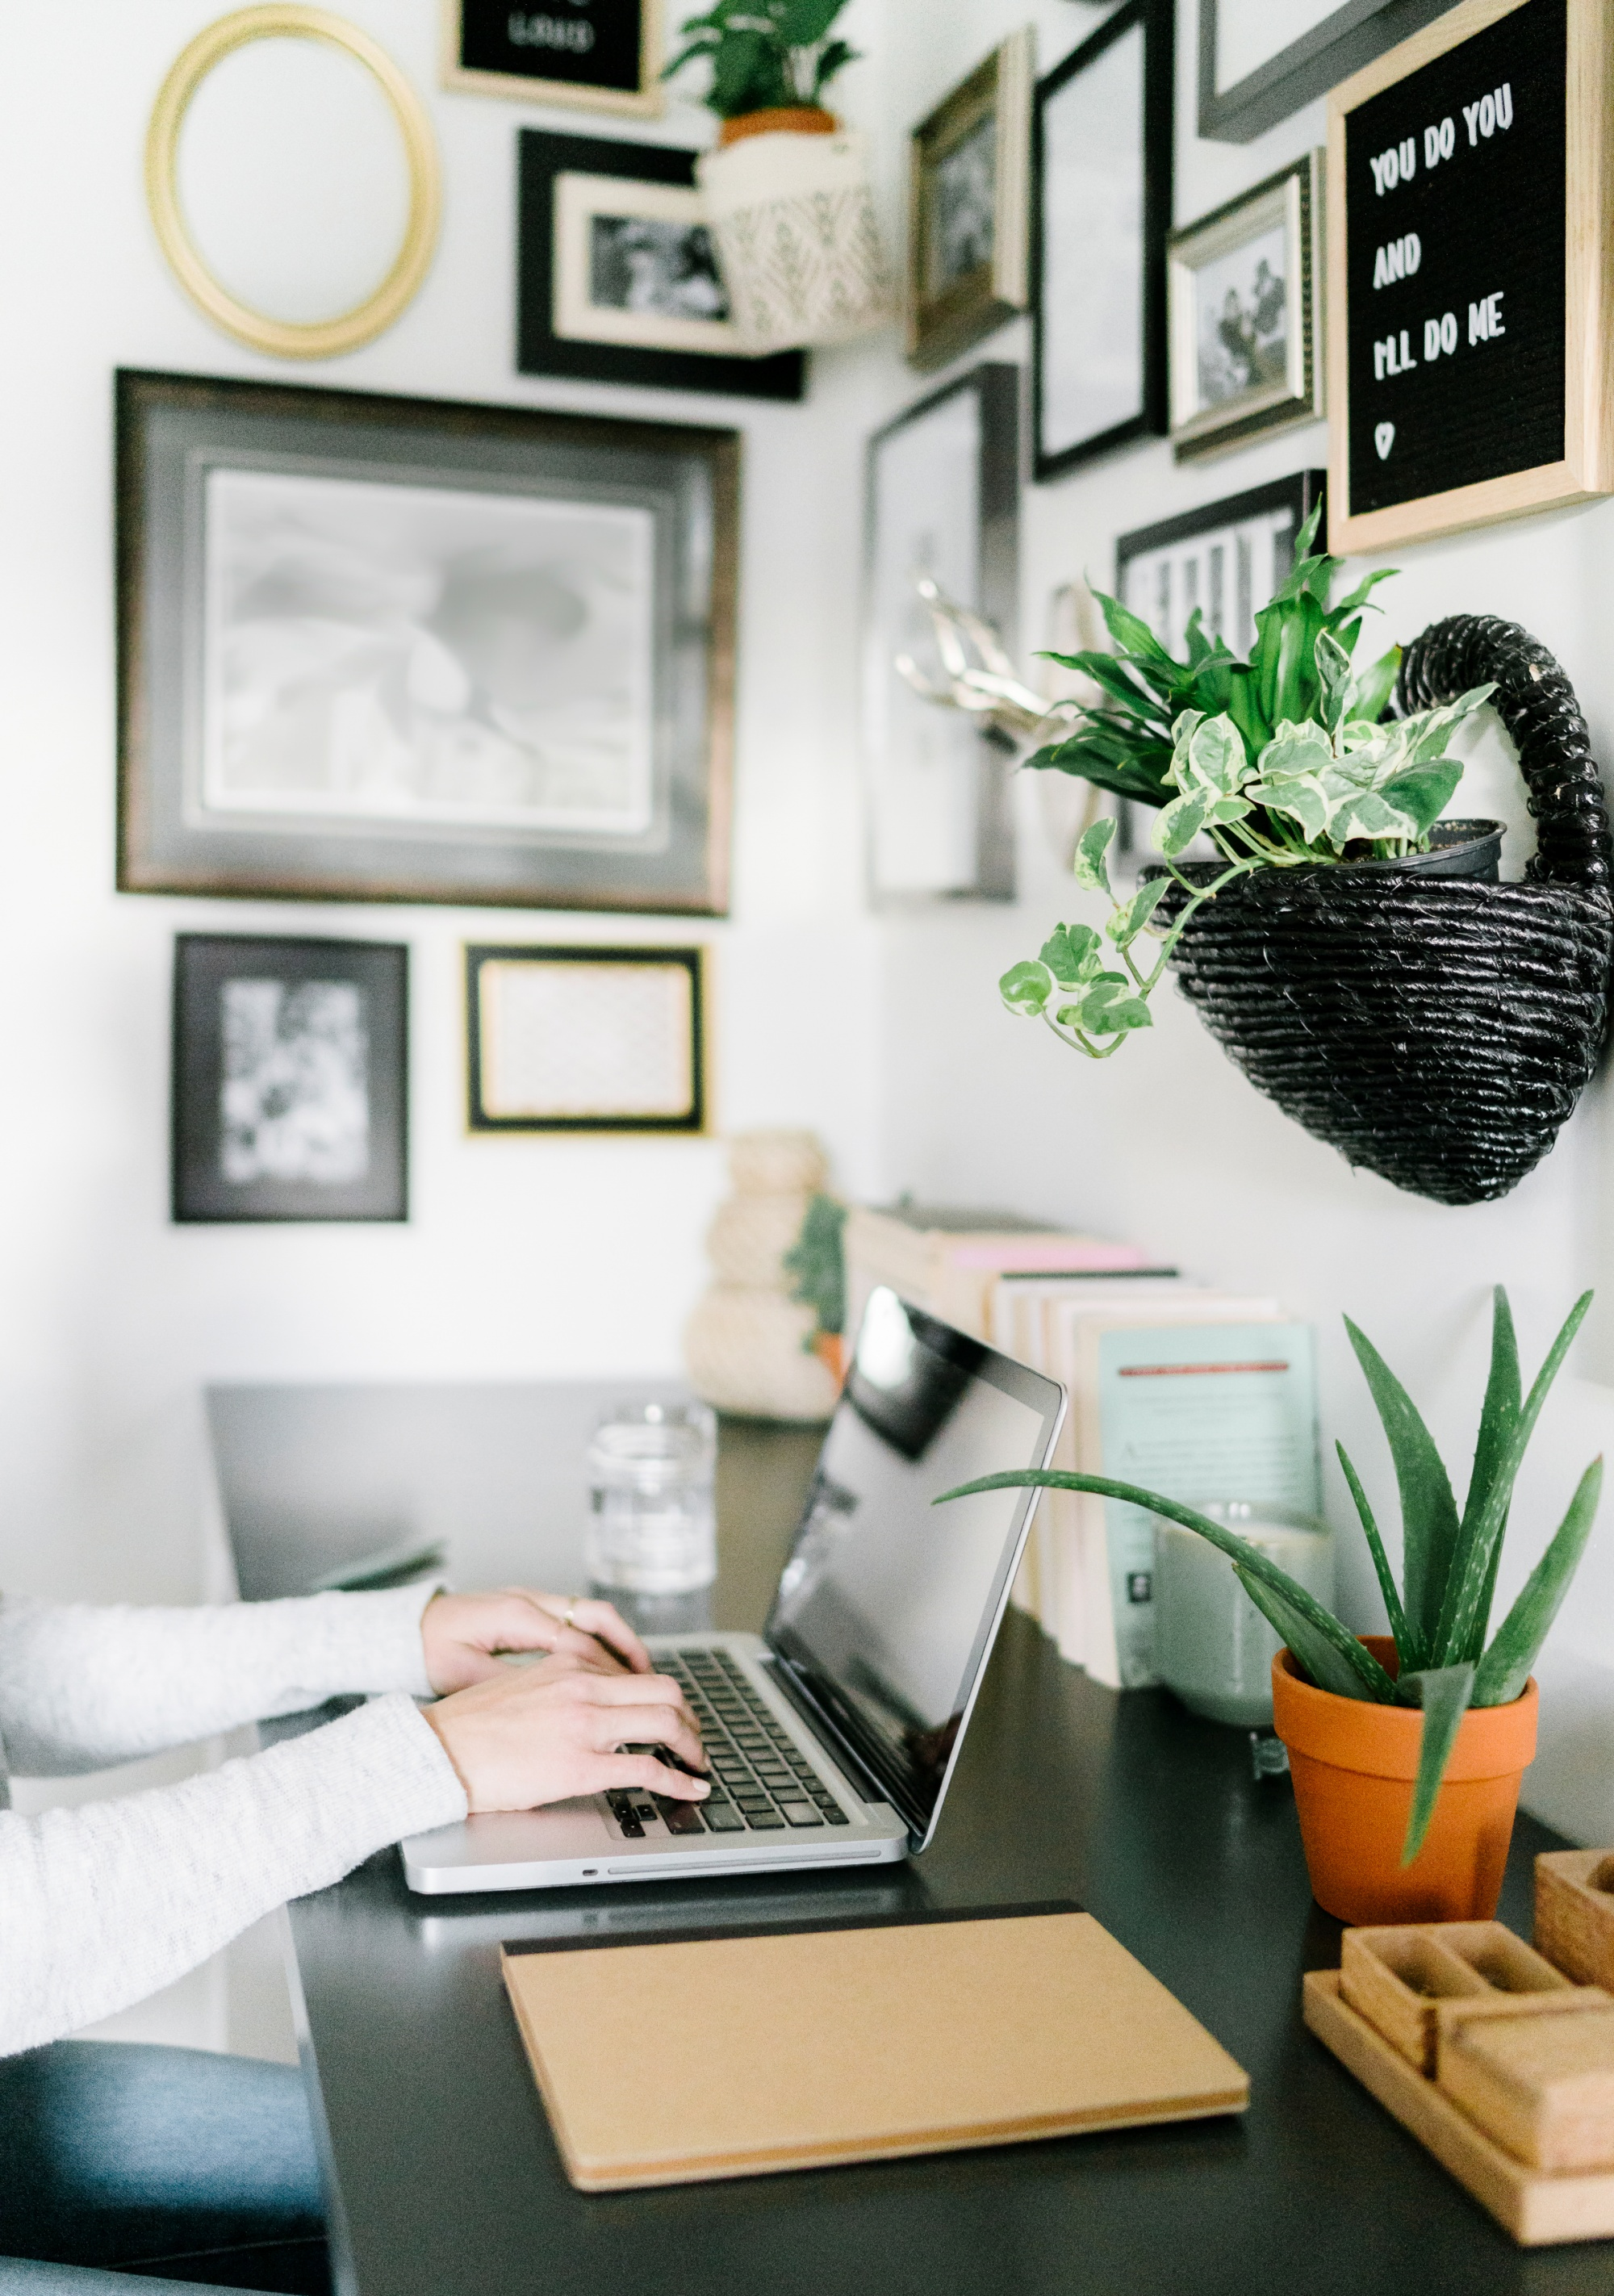 Why The Cloffice is the Best Work From Home Setup small desk with woman typing on keyboard